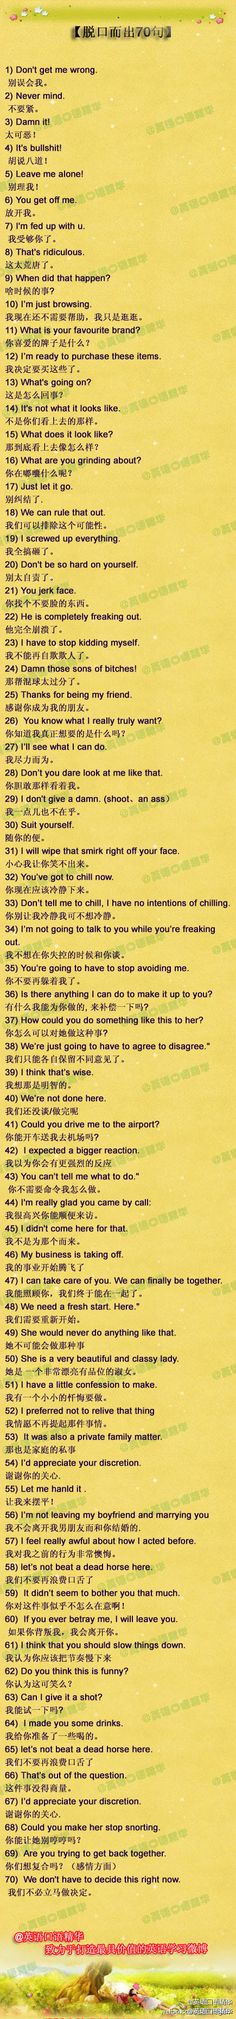 Chinese phrases translated from English. Some are quite rude, but some are useful conversational examples! https://odu.pl/cmbf